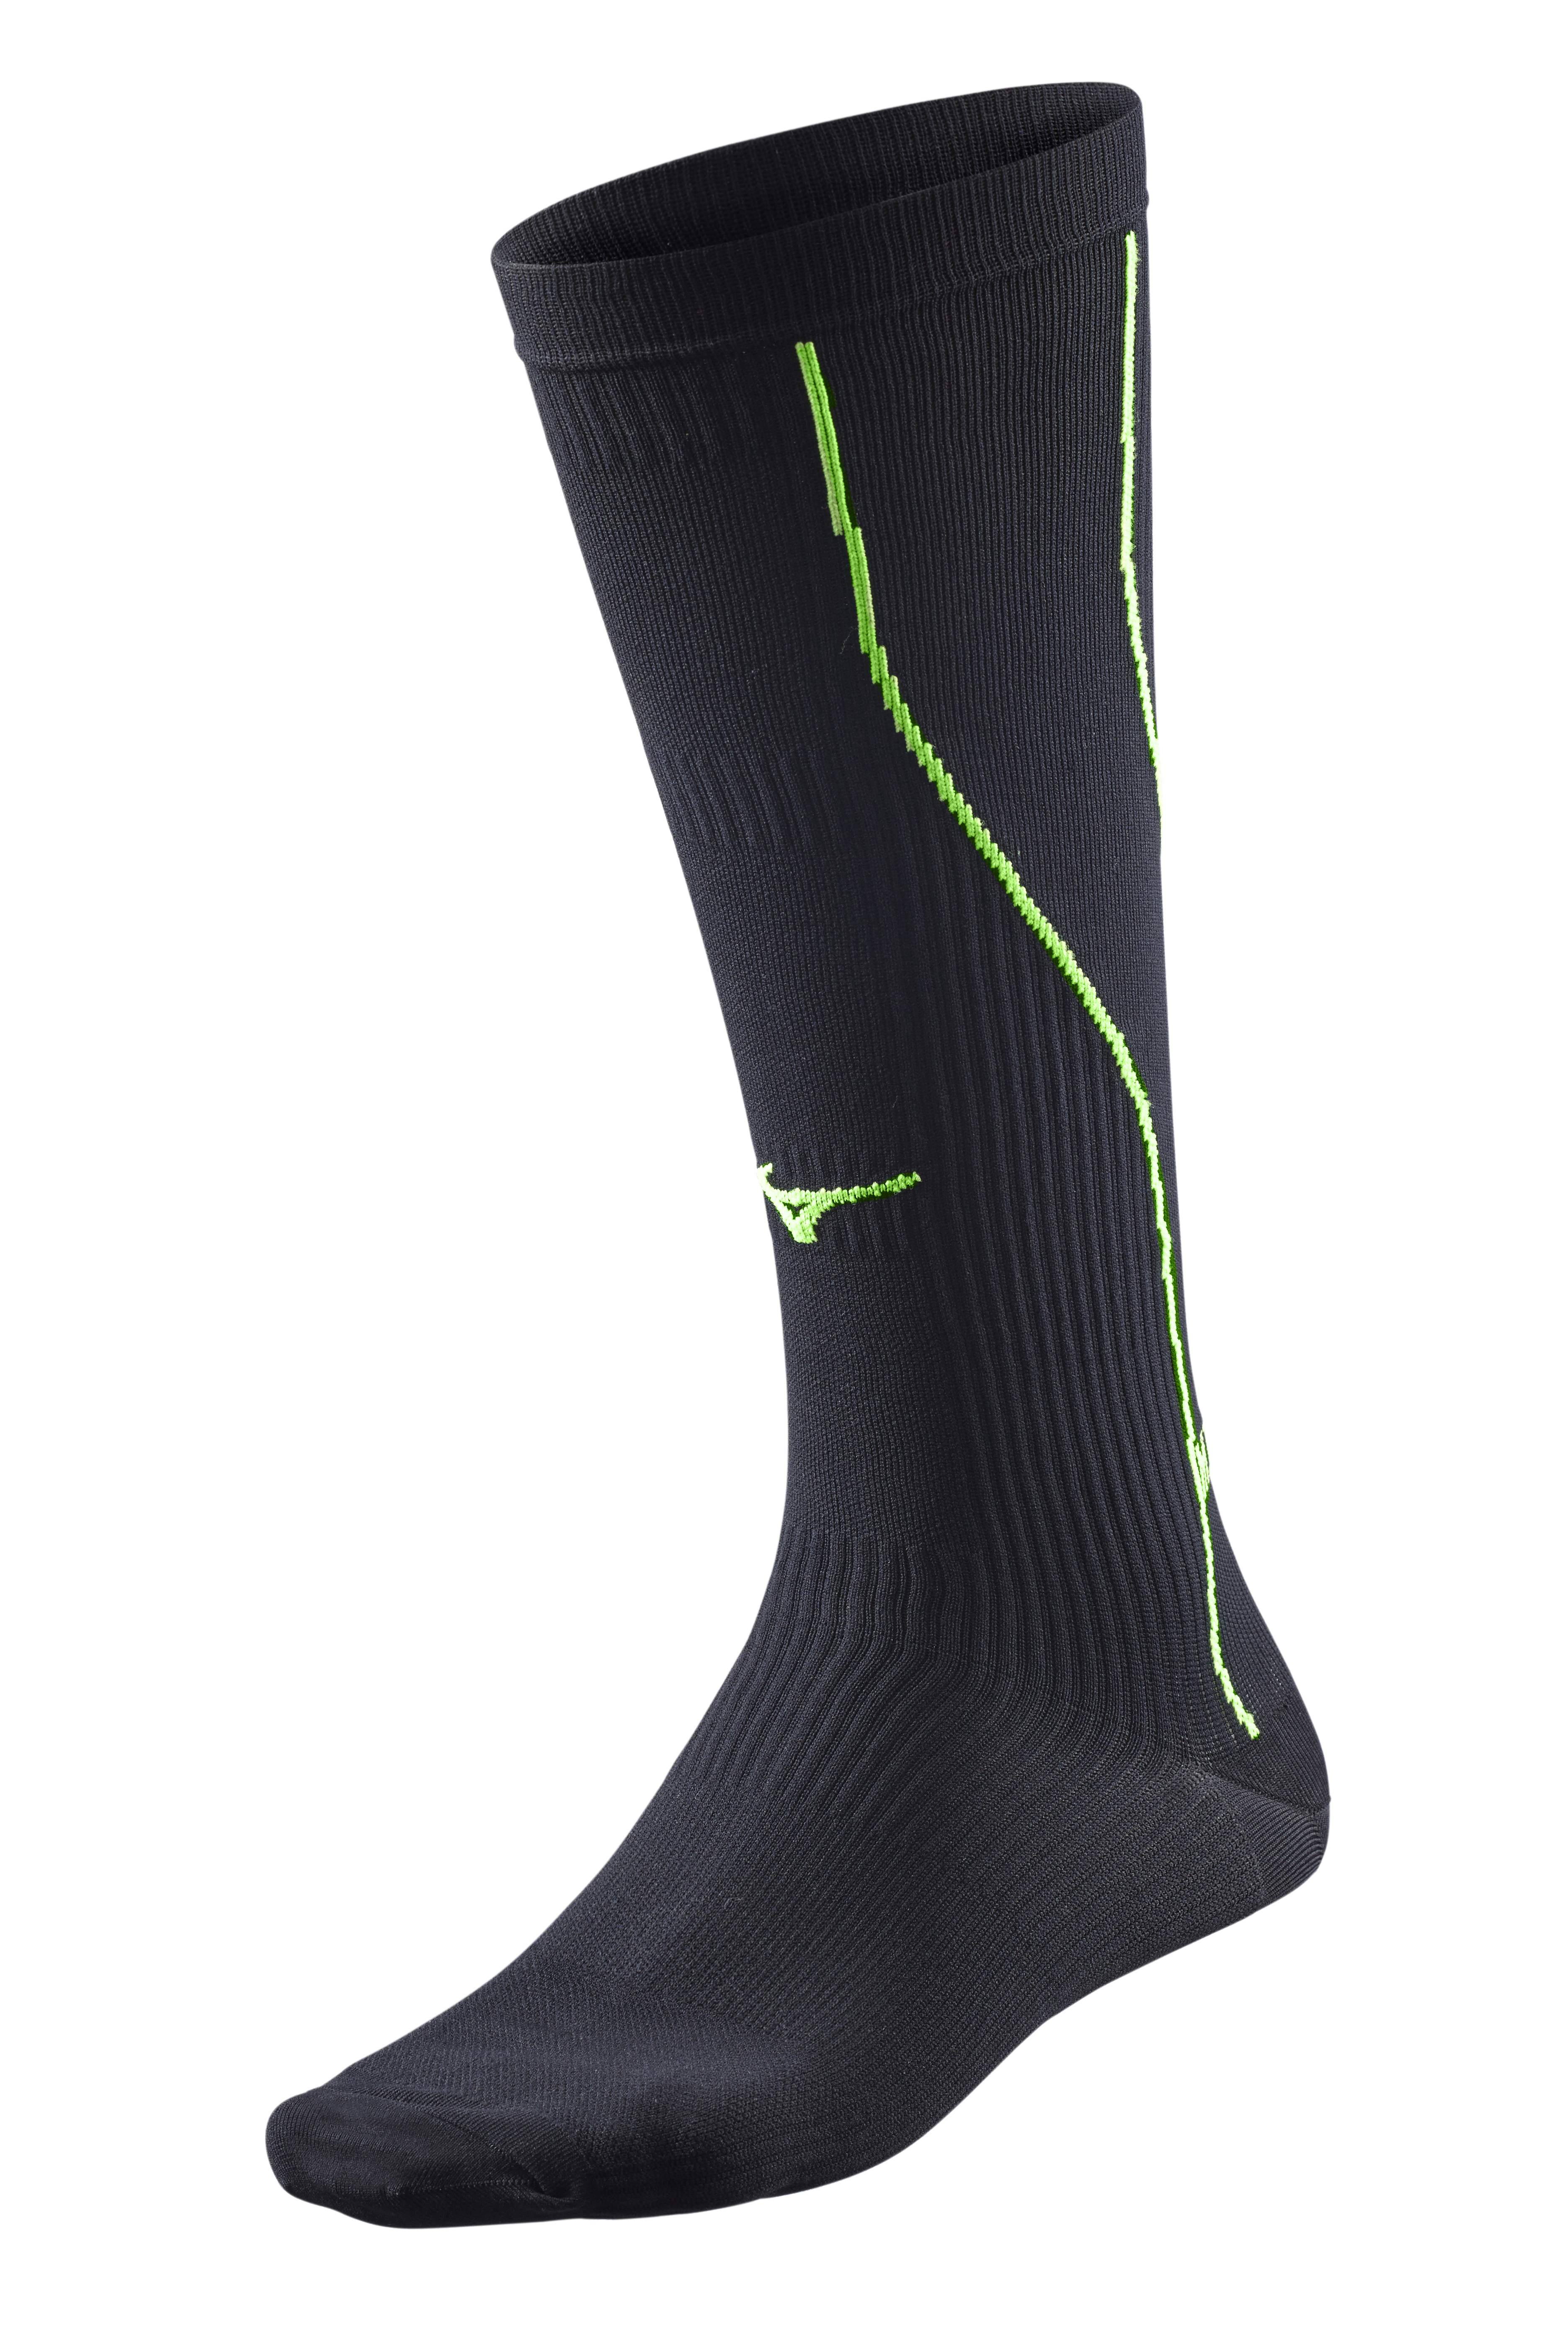 Mizuno Compression Socks J2GX5A10Z97 M